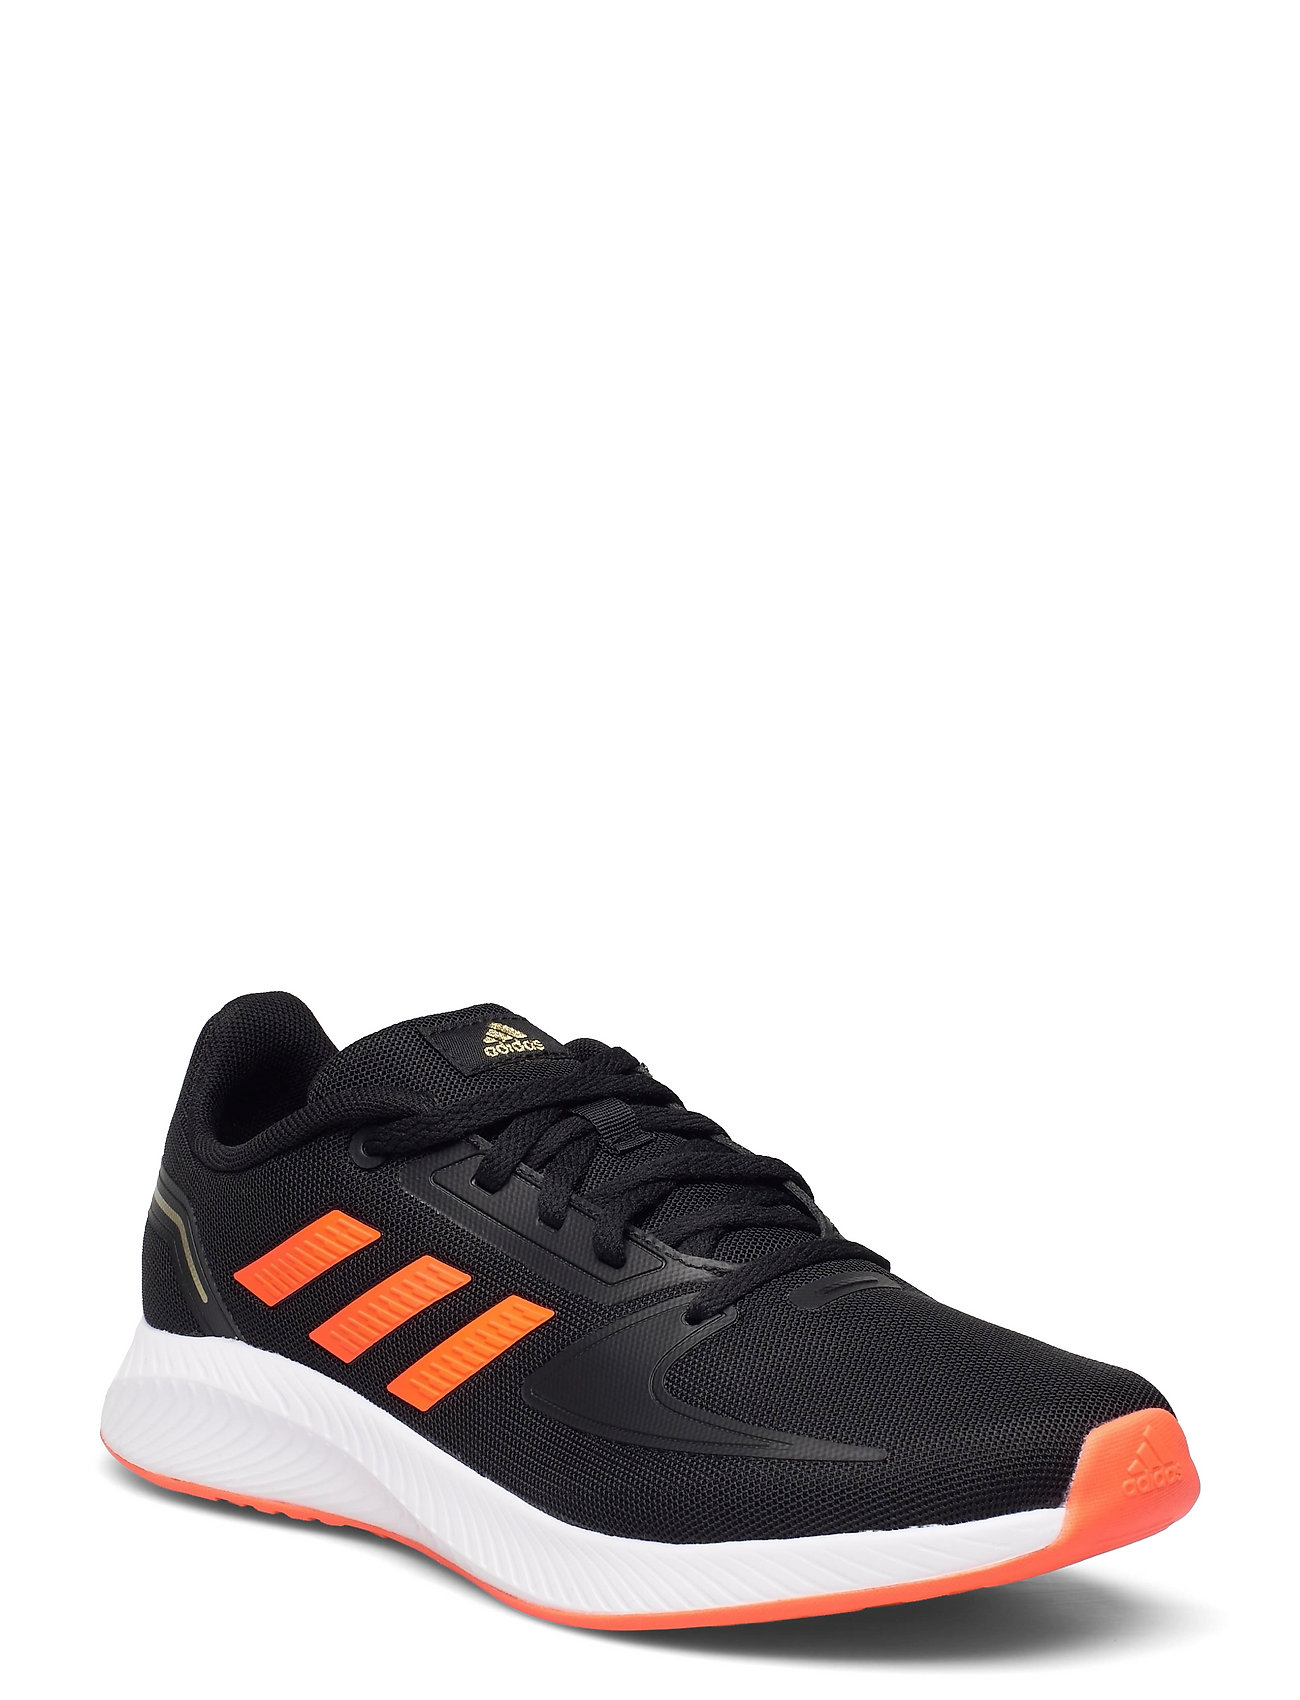 Runfalcon 2.0 Shoes Sports Shoes Running/training Shoes Sort Adidas Performance